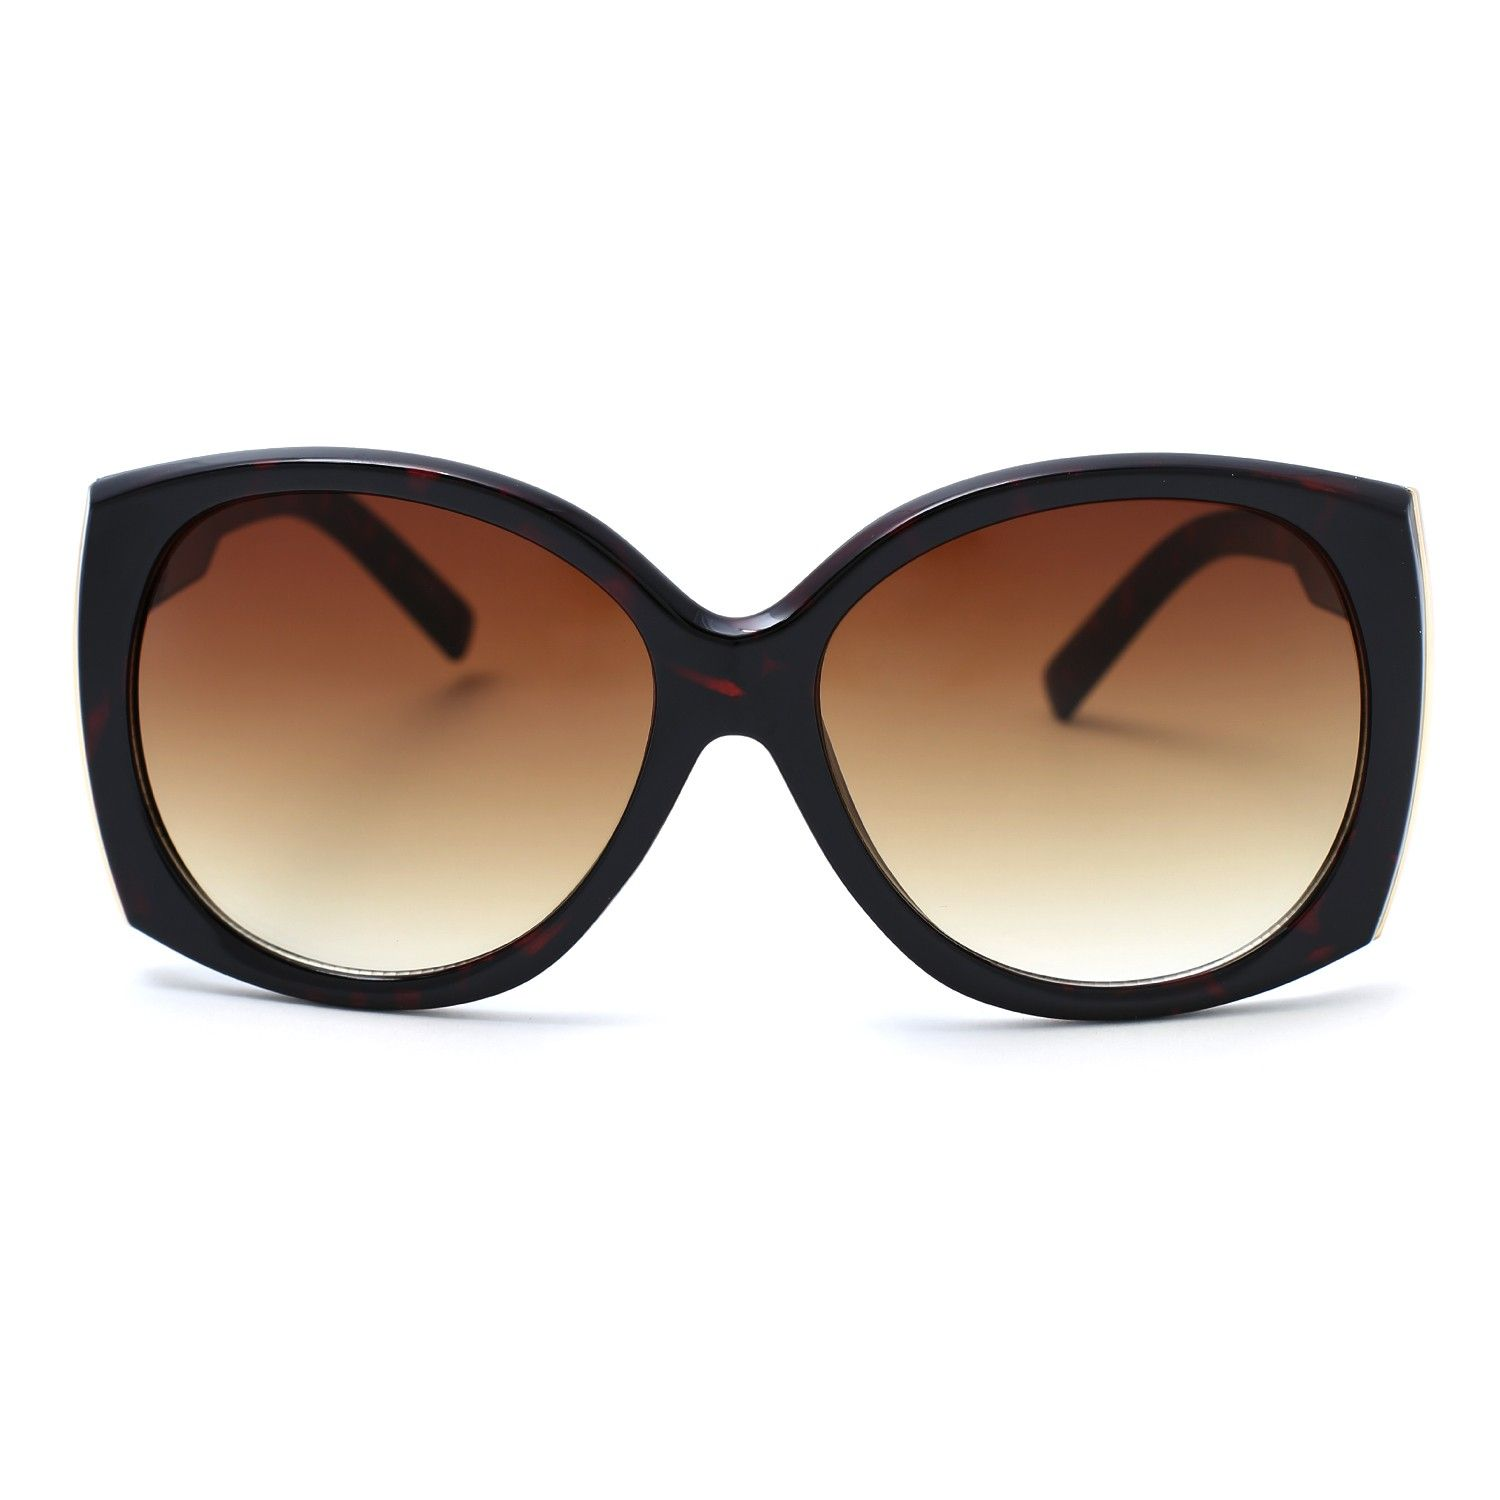 Oversized Square Lense Brown Sunglasses #11foxy